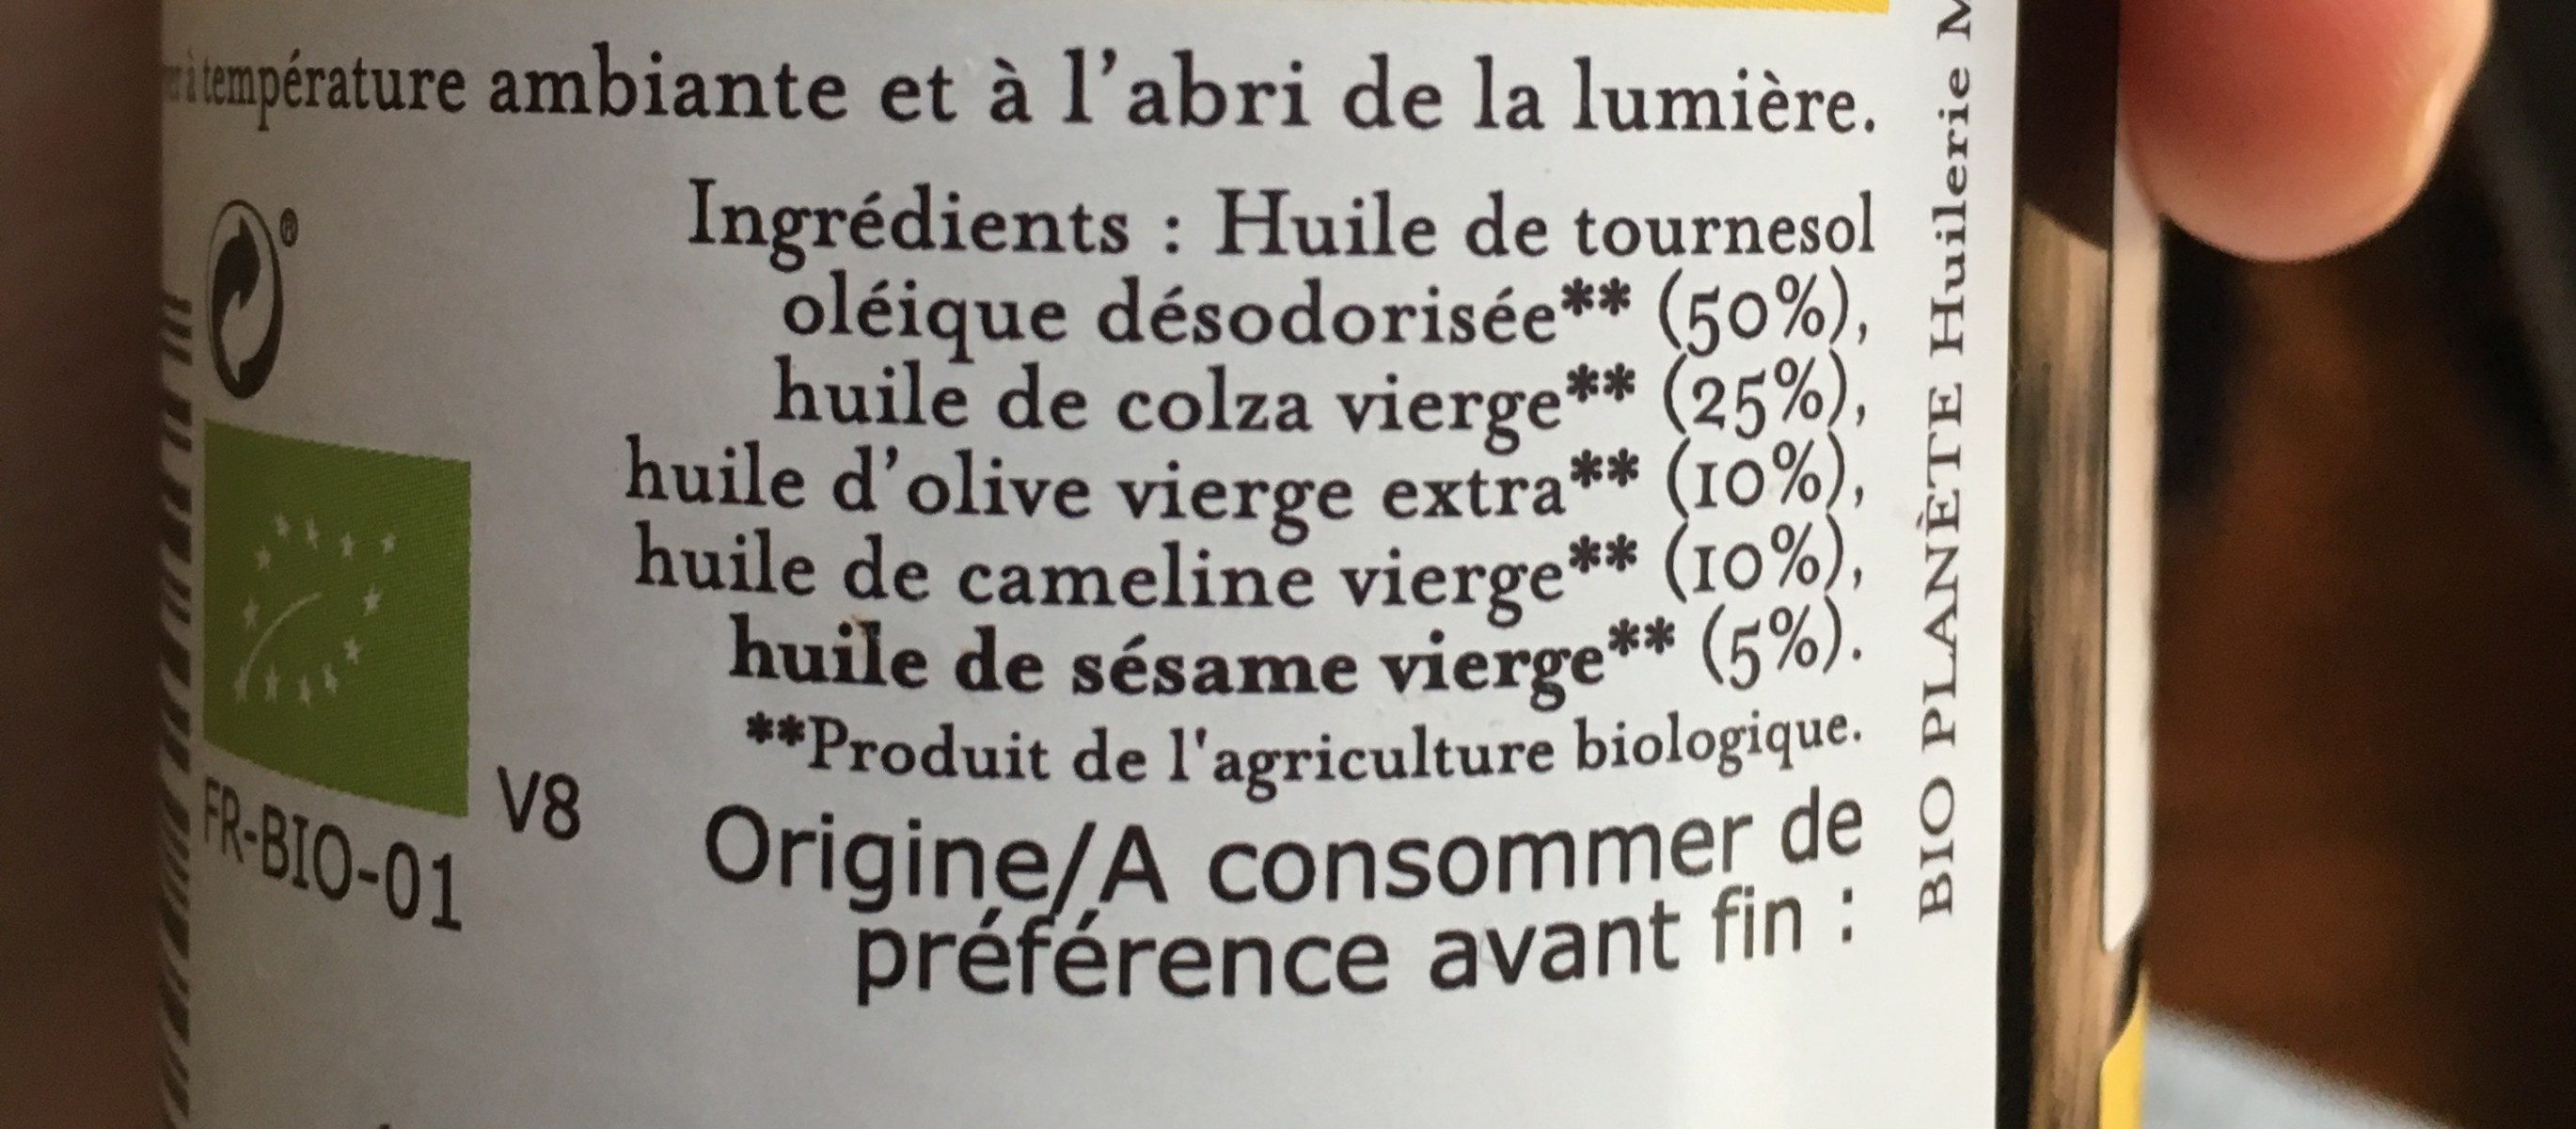 Oméga + Alliance de 5 huiles - Ingredients